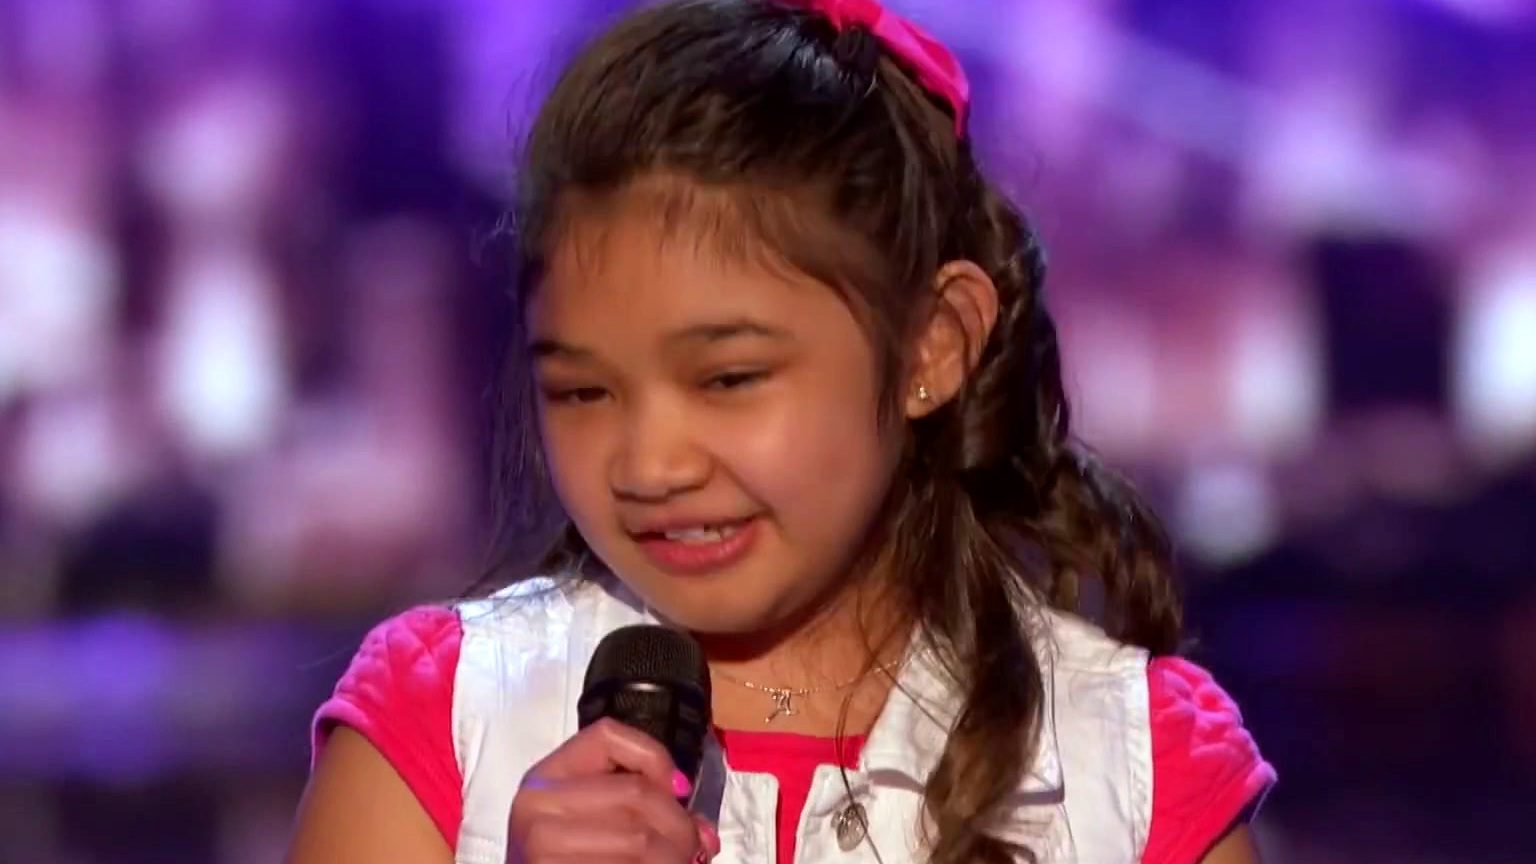 America's Got Talent: Angelica Hale's Memorable Golden Buzzer Moment